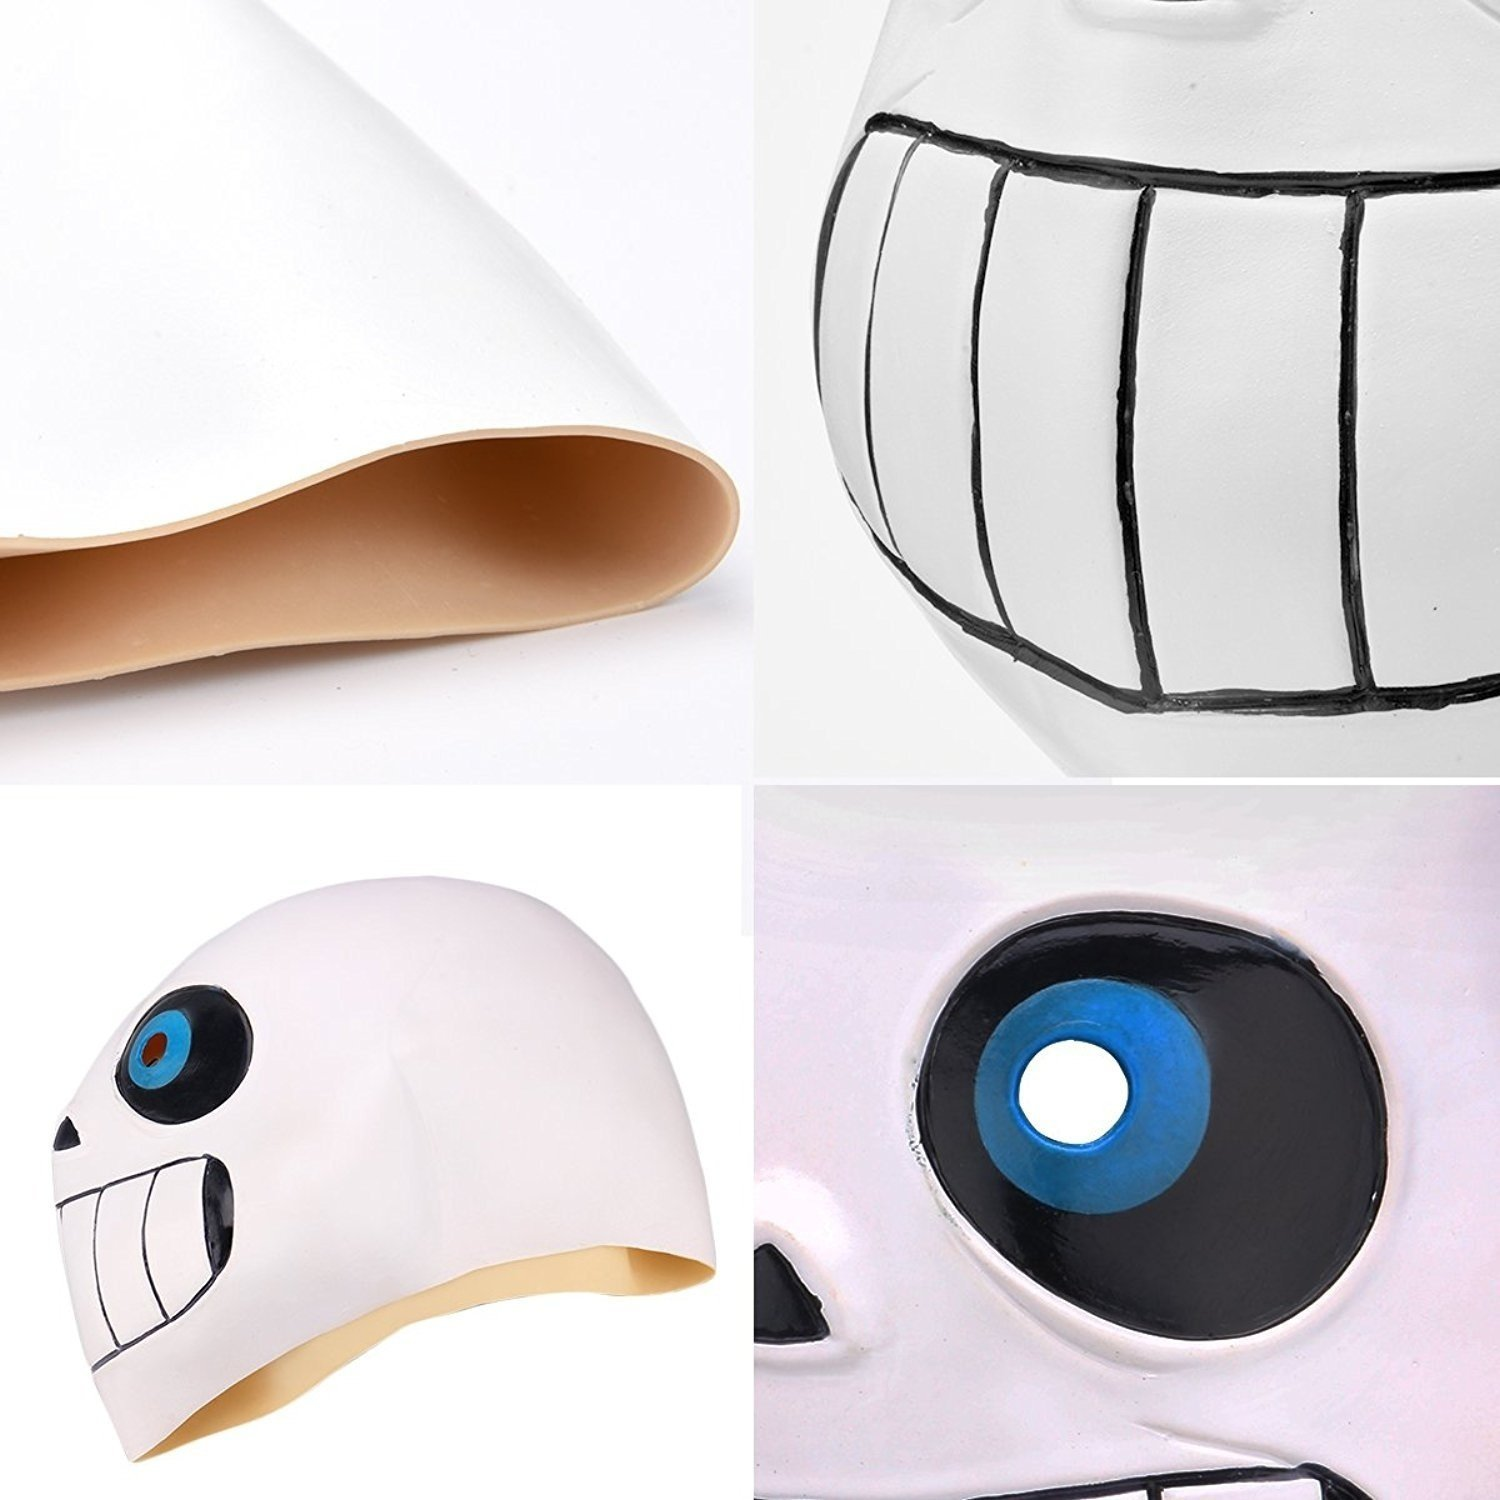 Mask-Novelty Latex Halloween Cosplay Costume Sans with Blue Eye for Kids